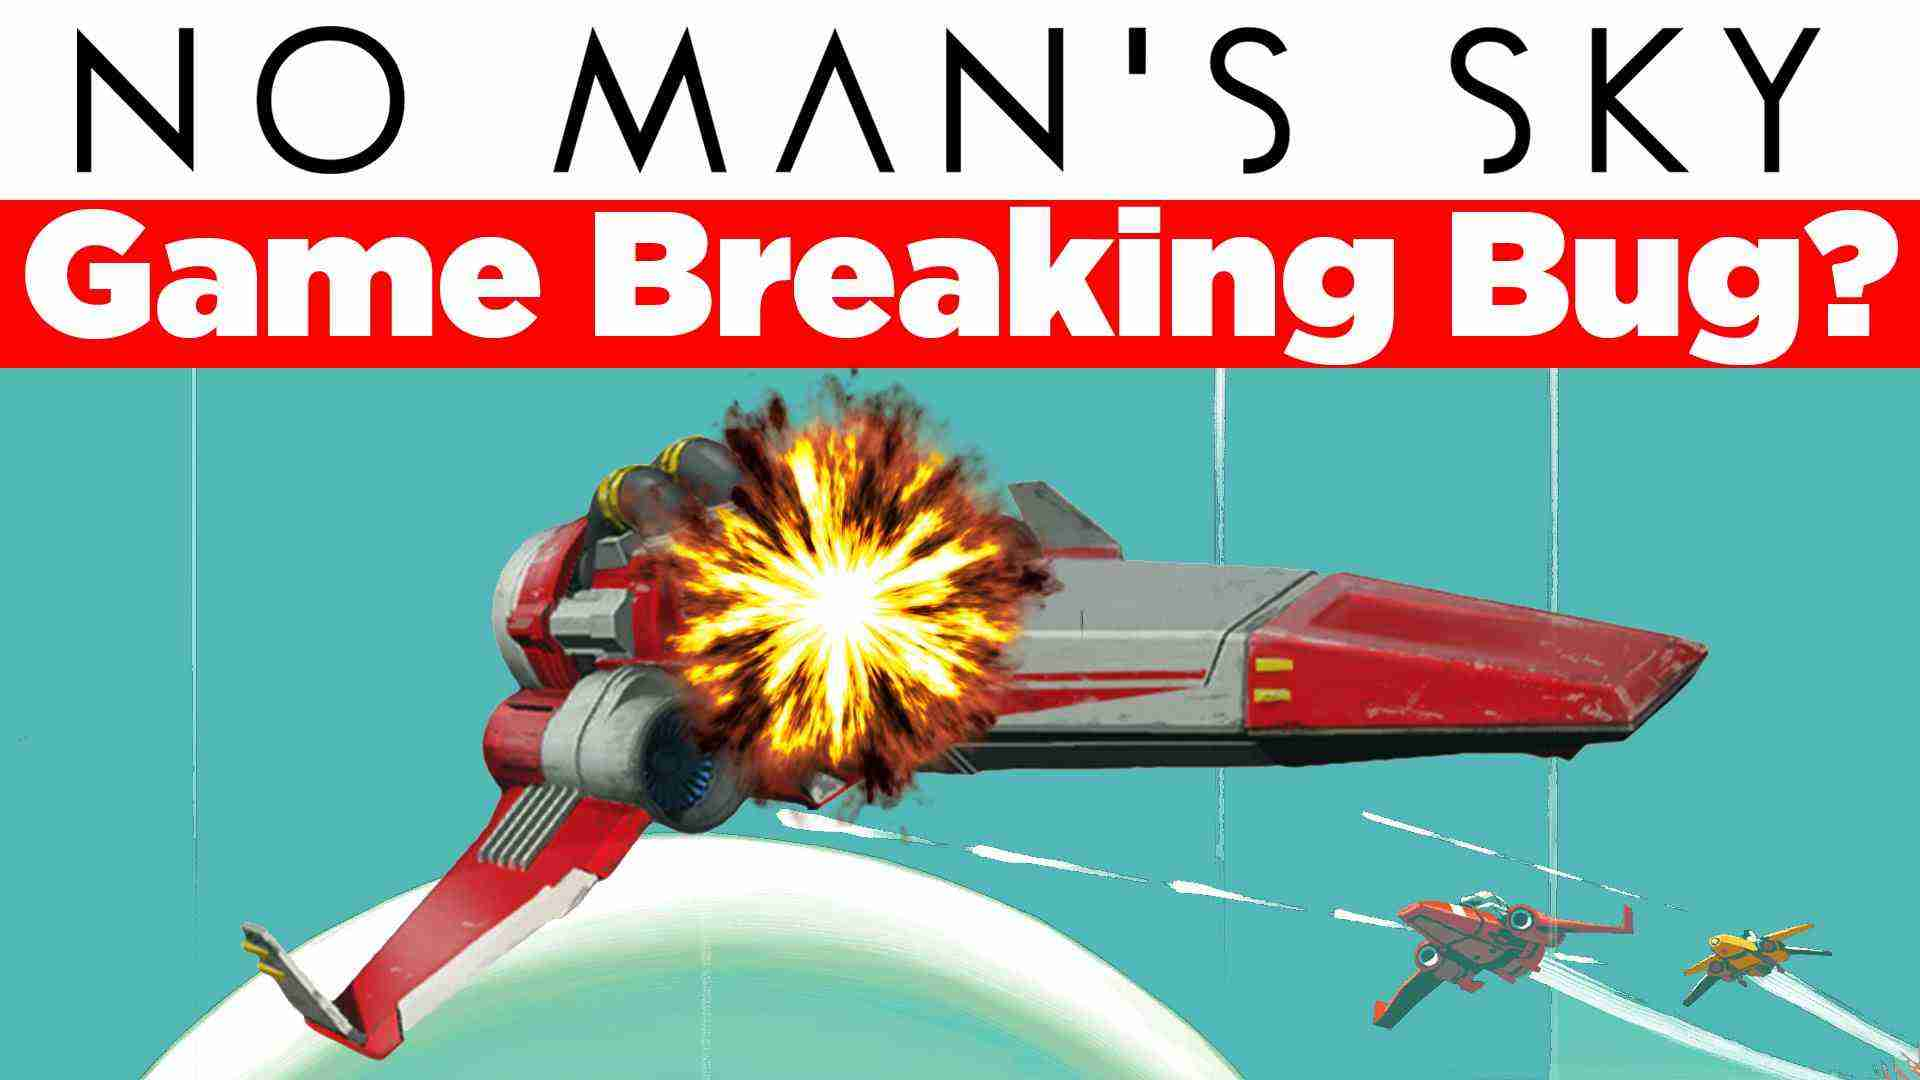 No Man's Sky Game BREAKING BUG? – Inside Gaming Daily